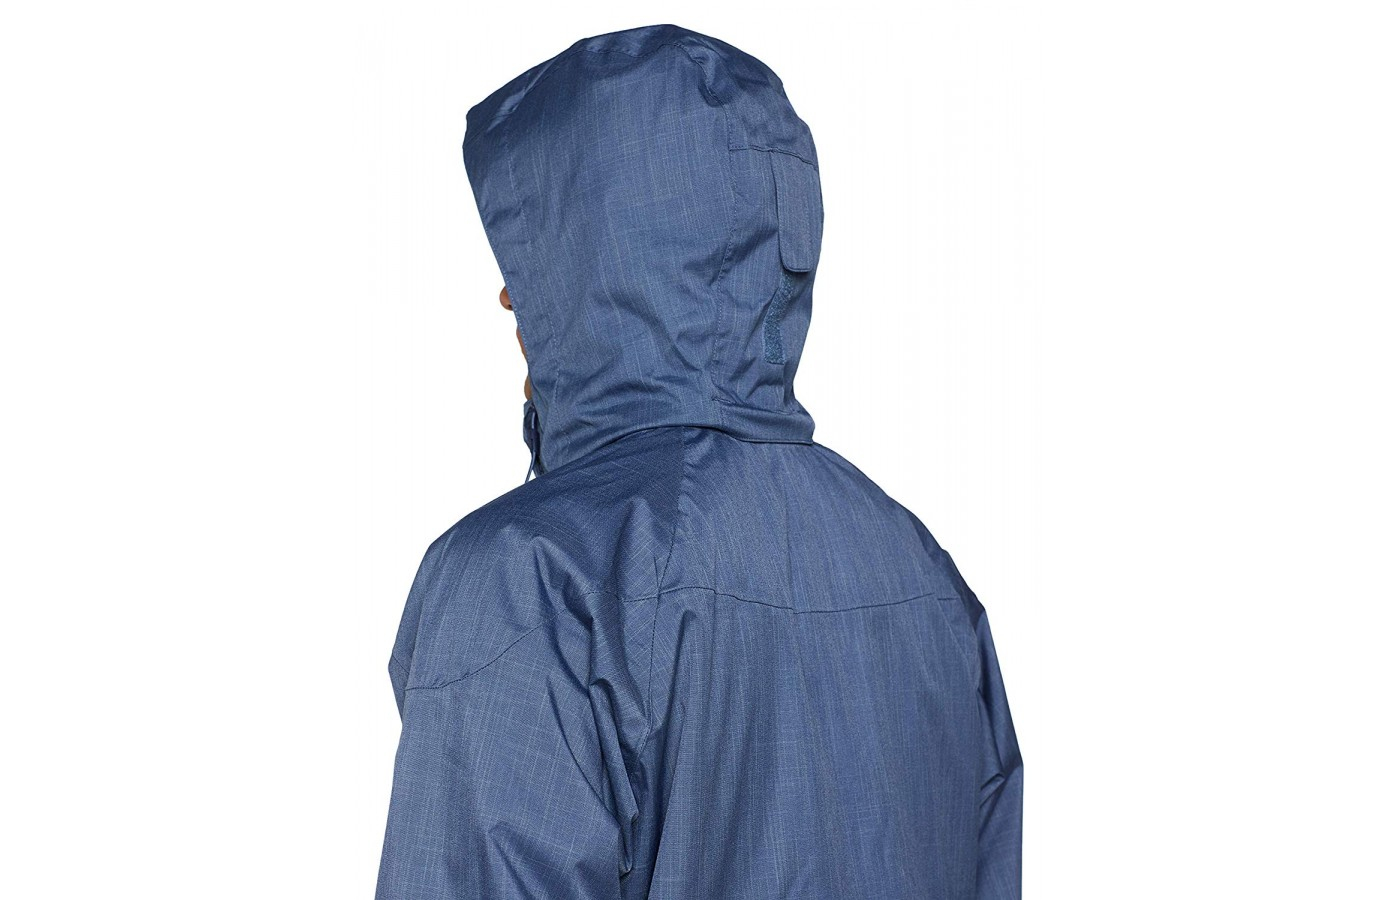 The jacket has an articulating removable storm hood that provides protection from the elements.